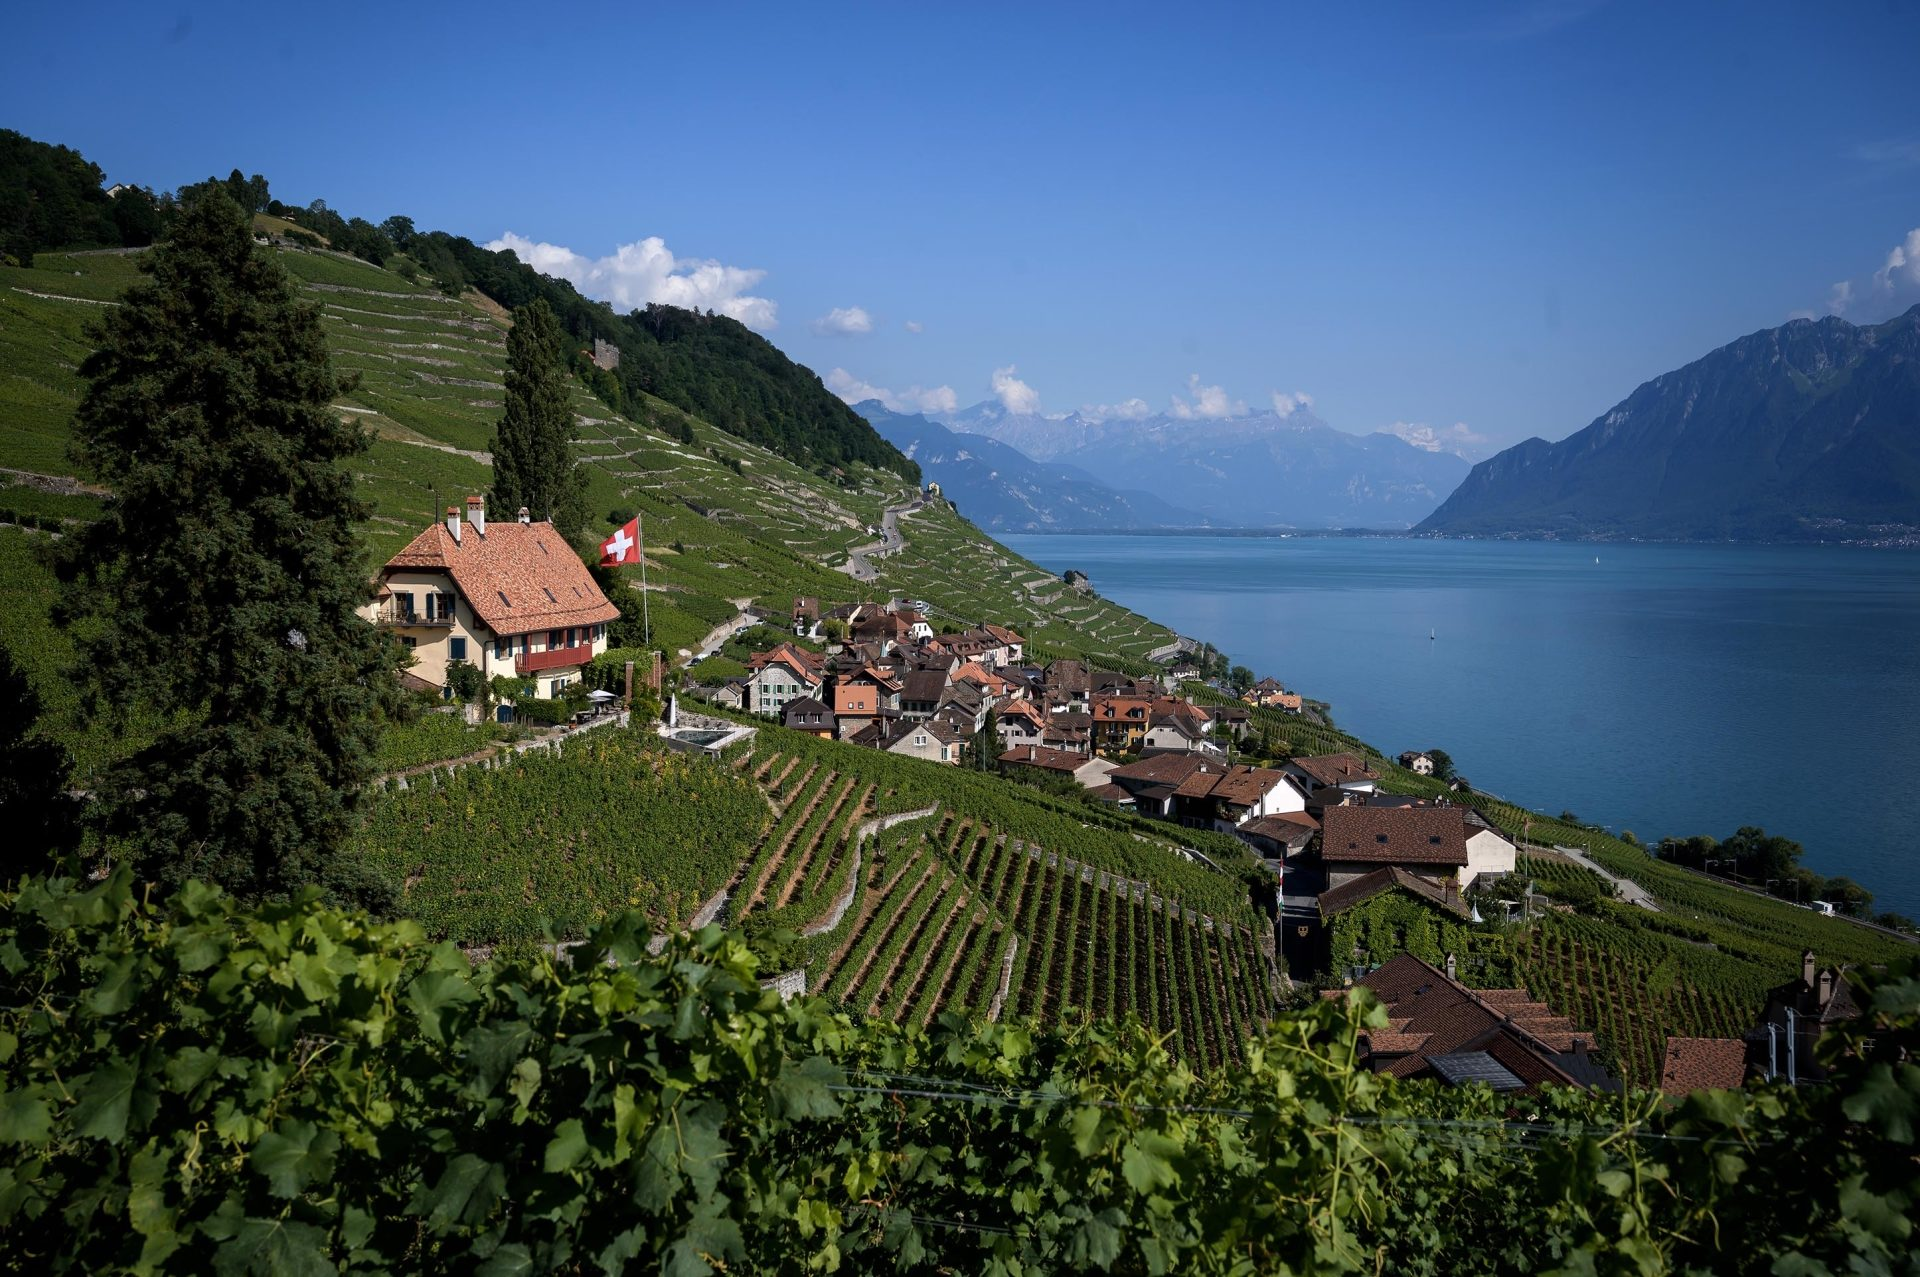 SWITZERLAND-VINICULTURE-LIFESTYLE-TRADE